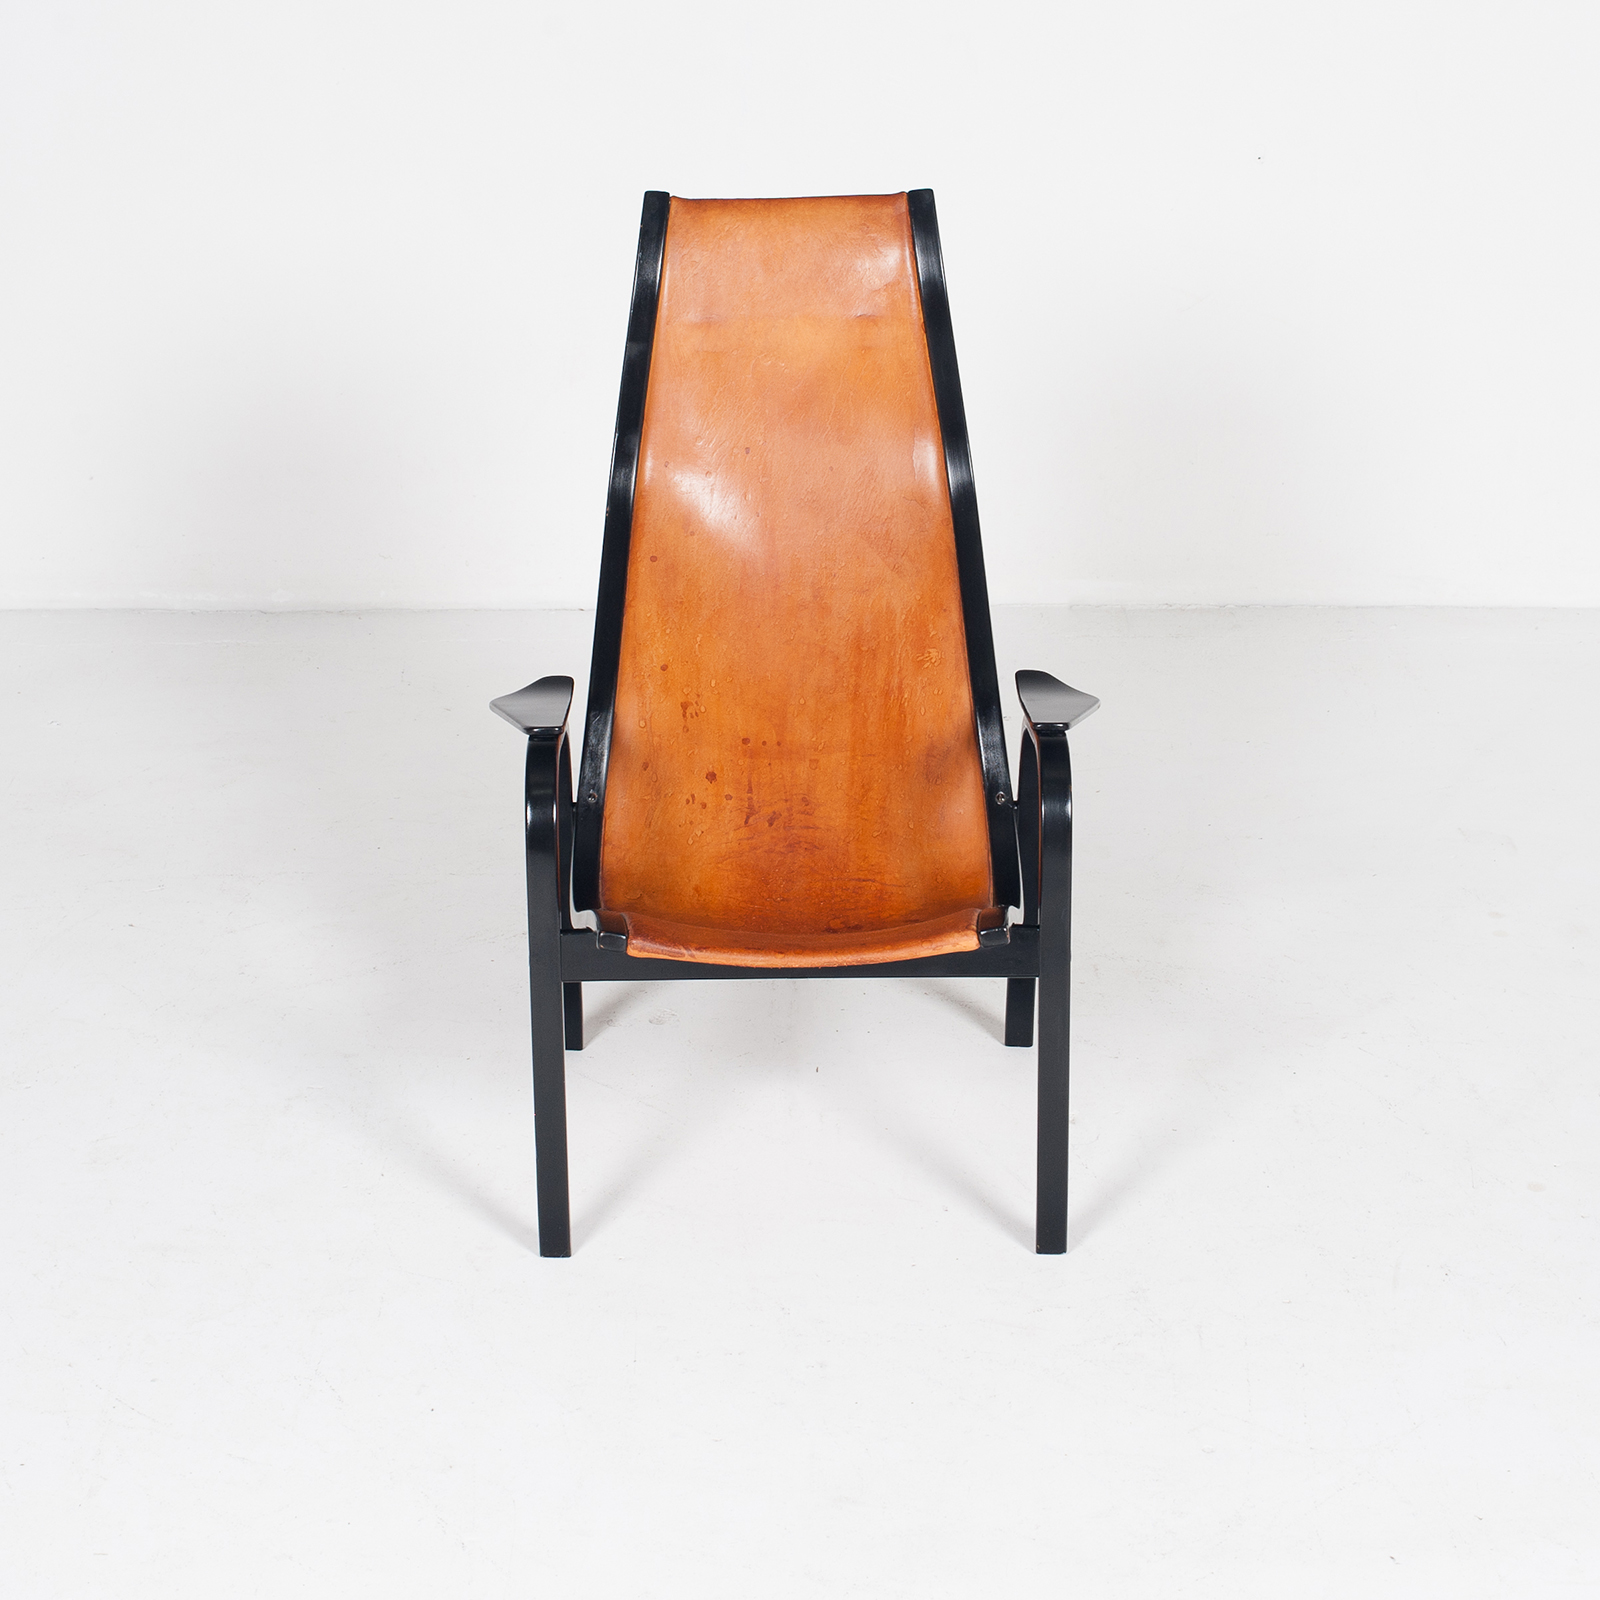 Kurva Lounge Chair By Yngve Ekstrom For Swedese In Tan Leather, 1950s, Sweden 31